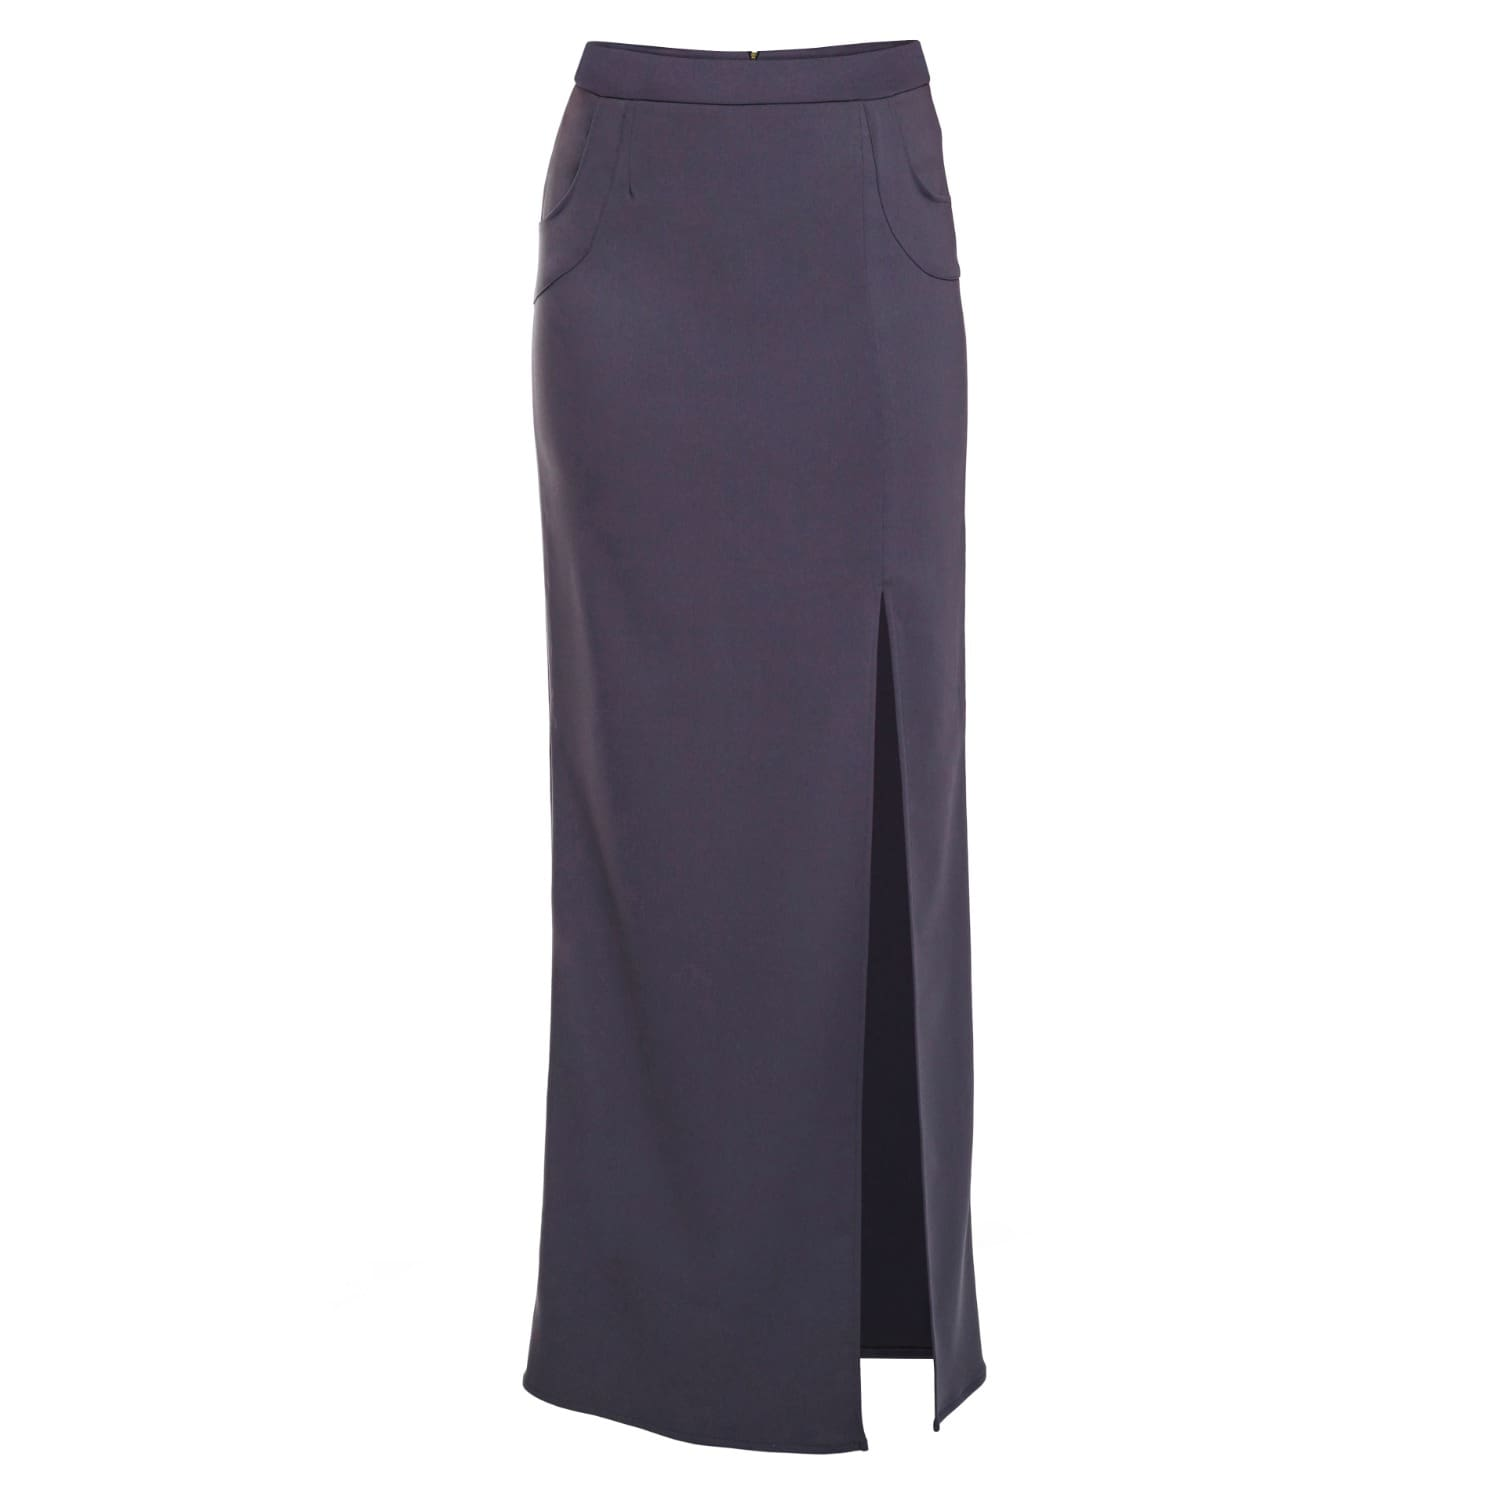 bright in luster shades of run shoes Charcoal Grey Tailored Maxi Skirt by Philosofée by Glaucia Stanganelli